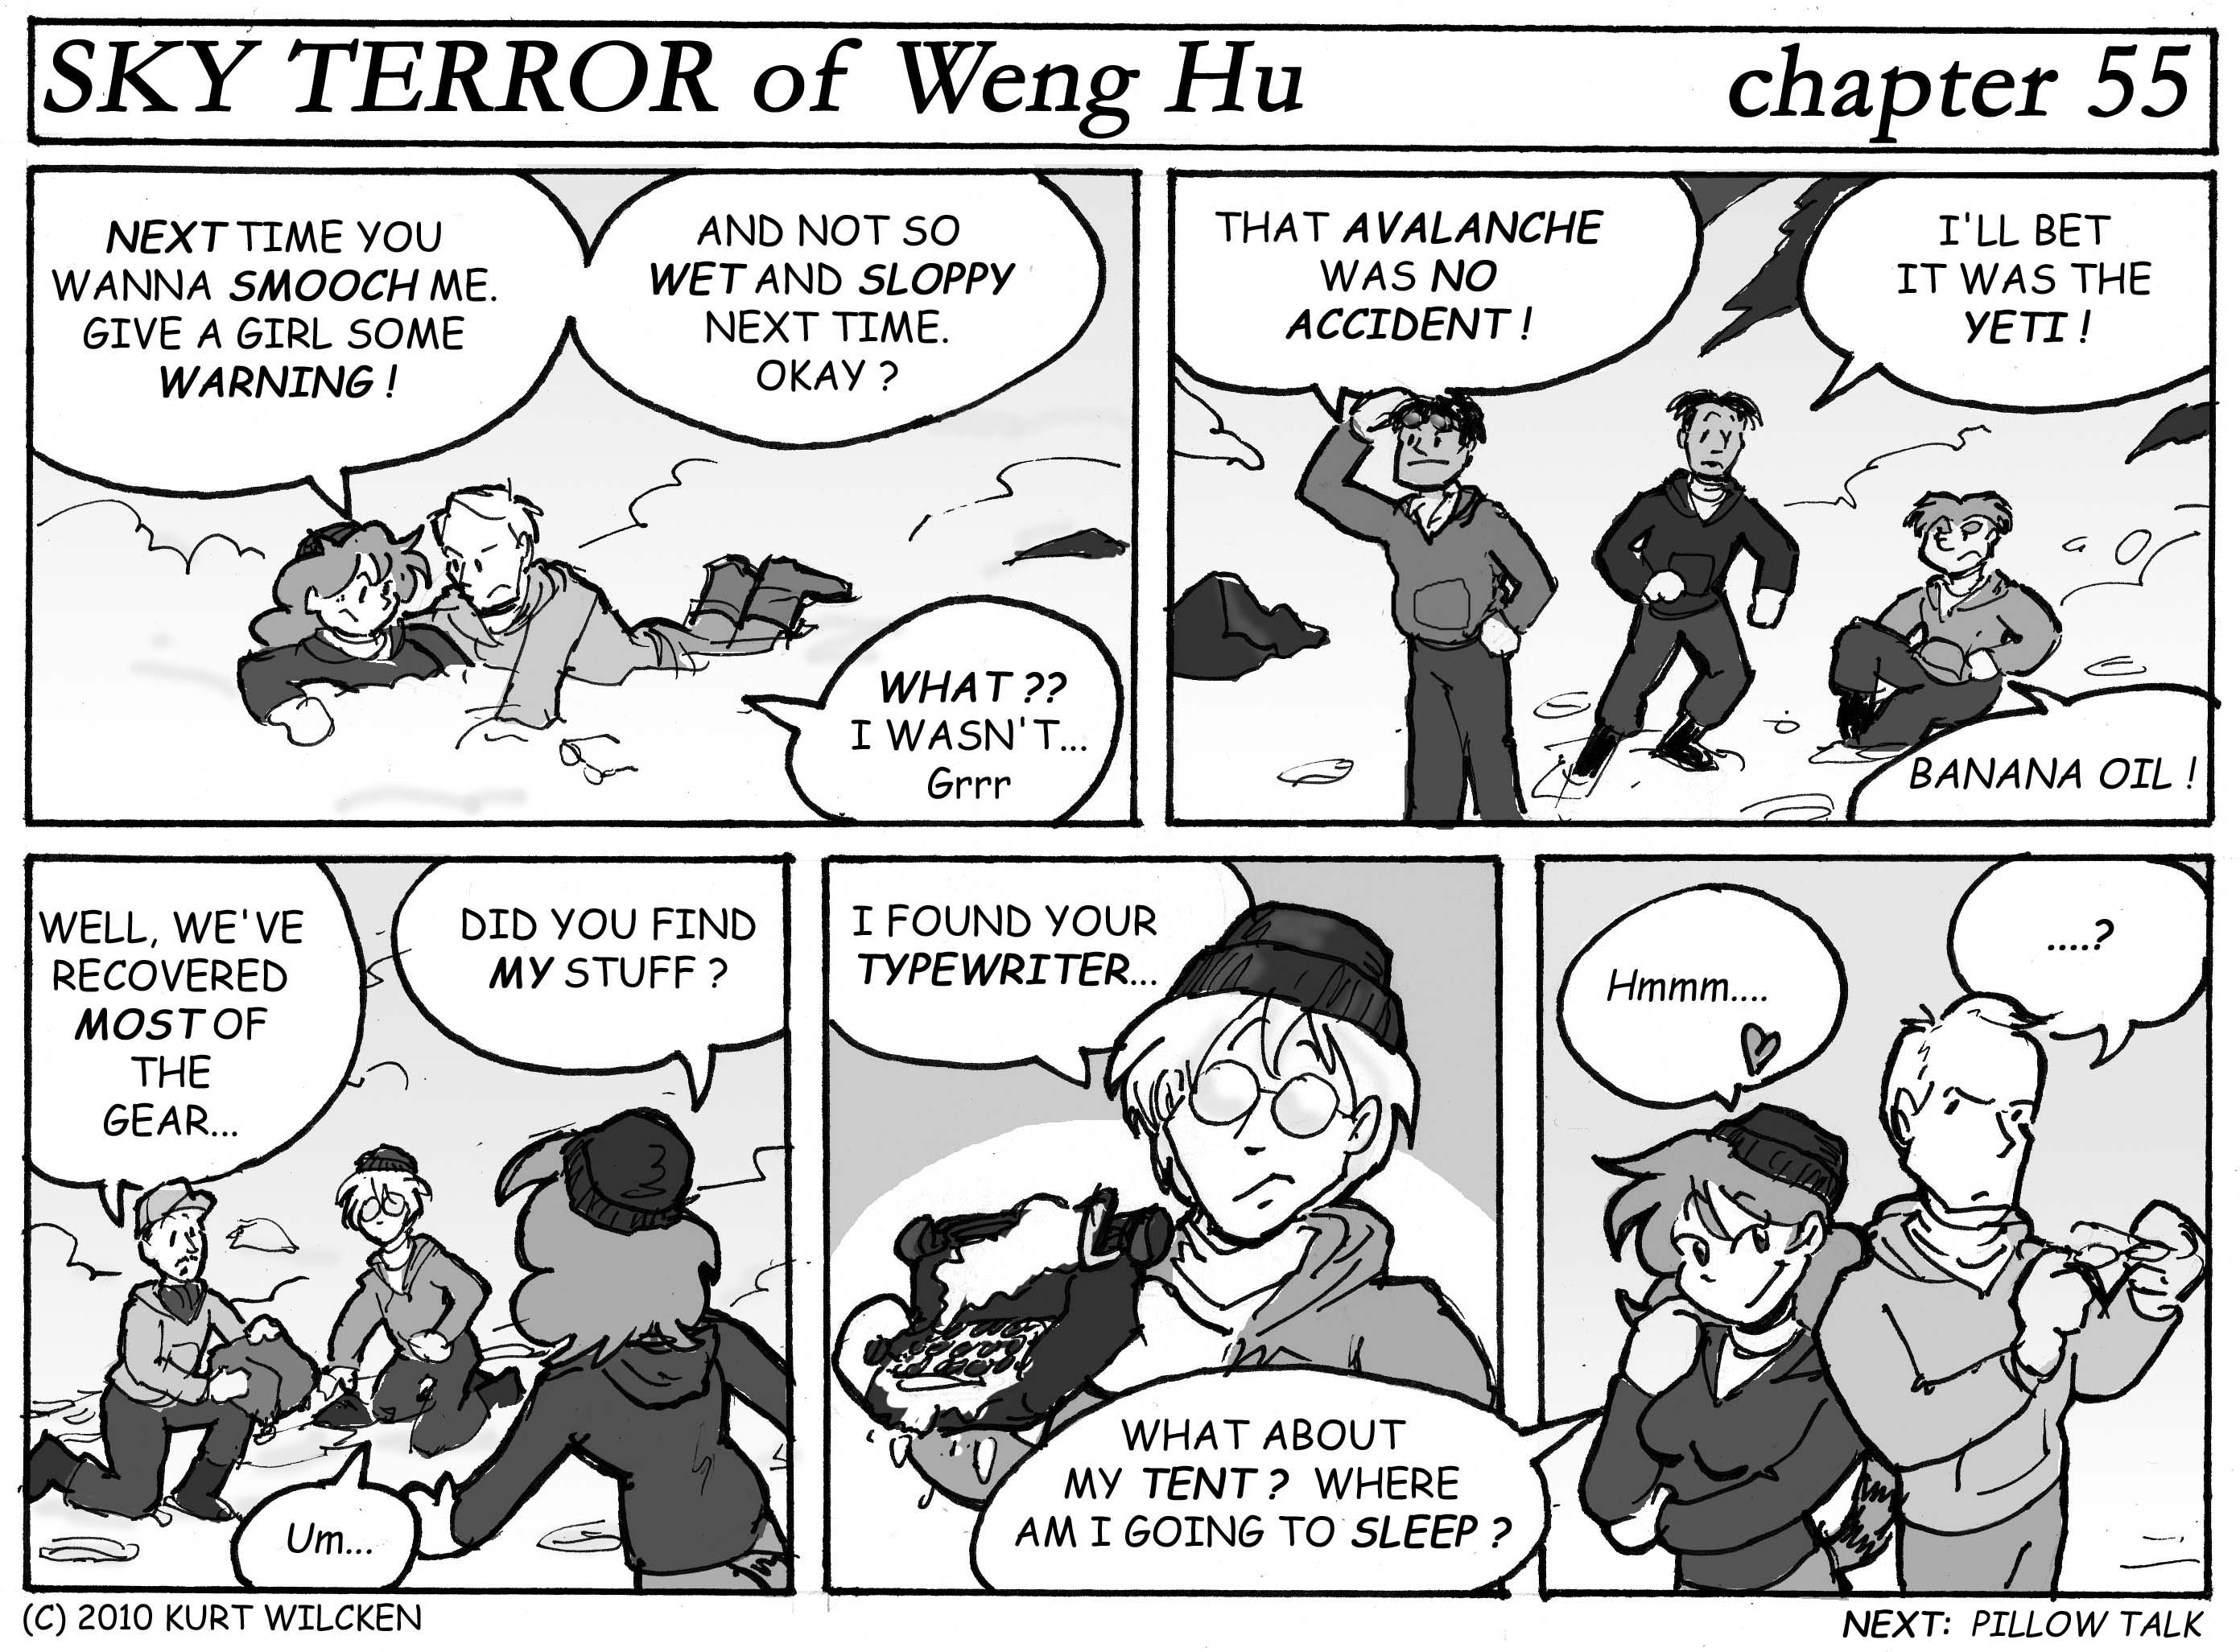 SKY TERROR of Weng Hu:  Chapter 55 — The Tent and the Typewriter